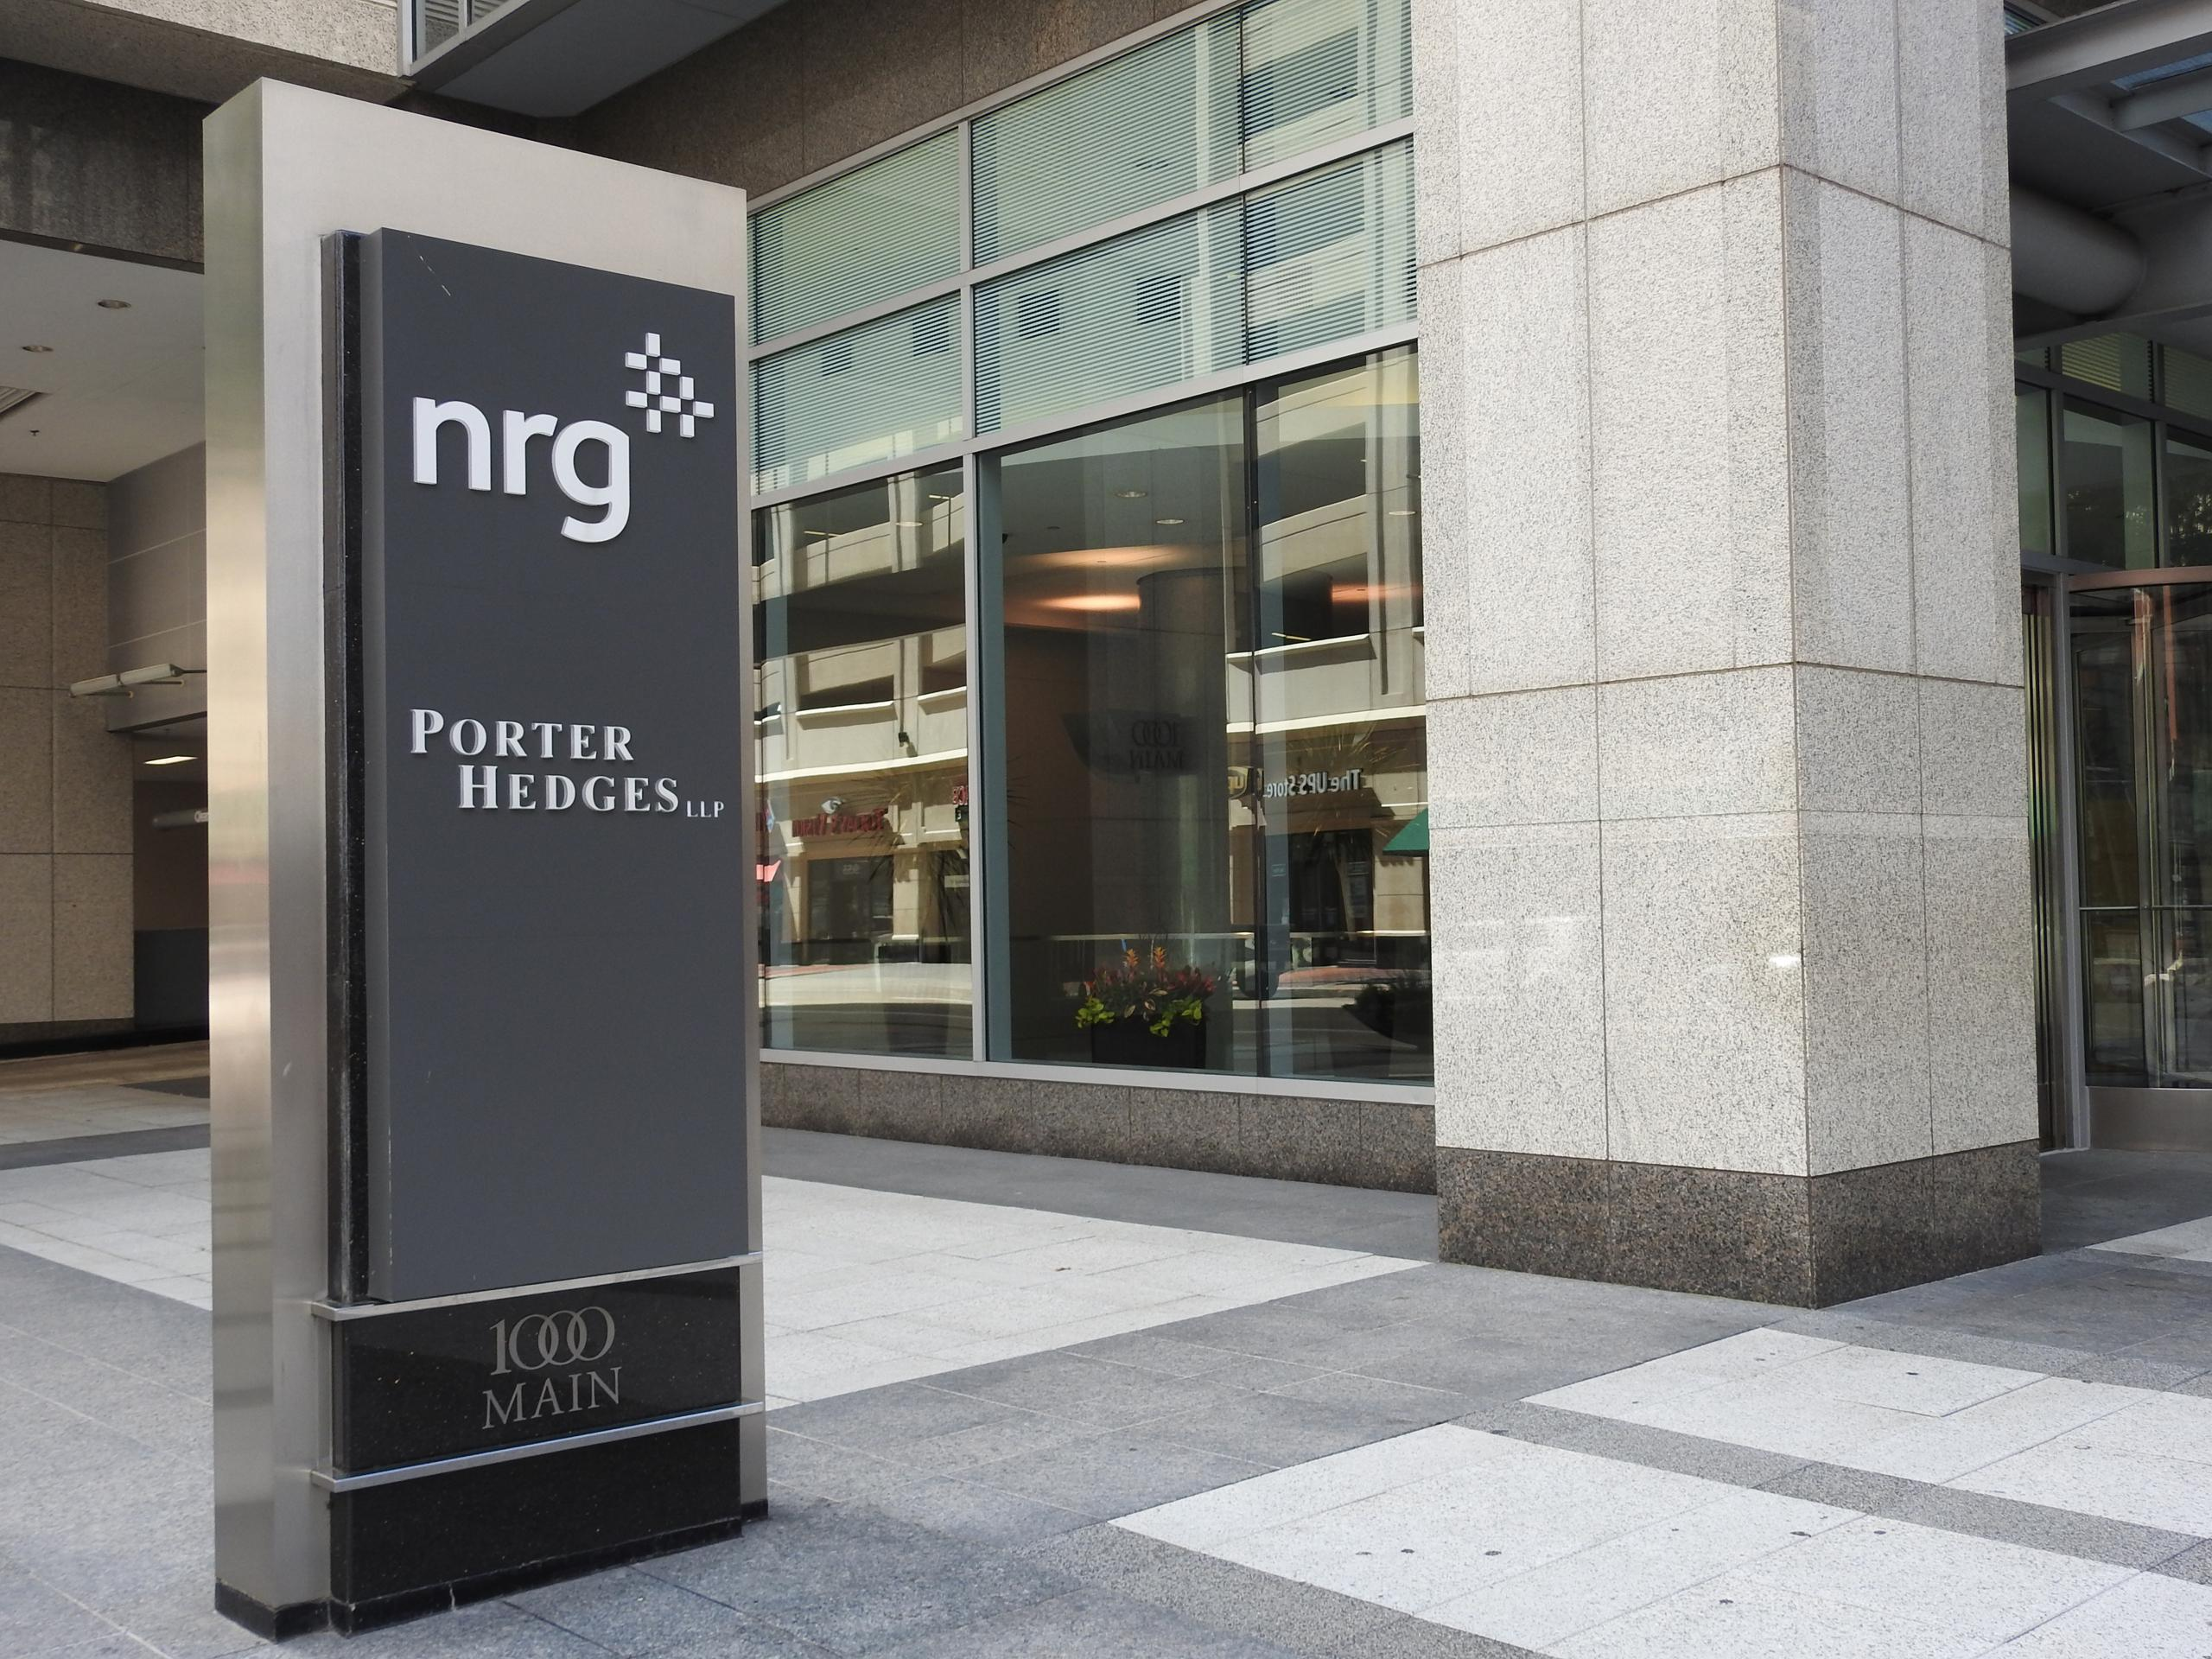 Entrance to an NRG office in downtown Houston, Texas.